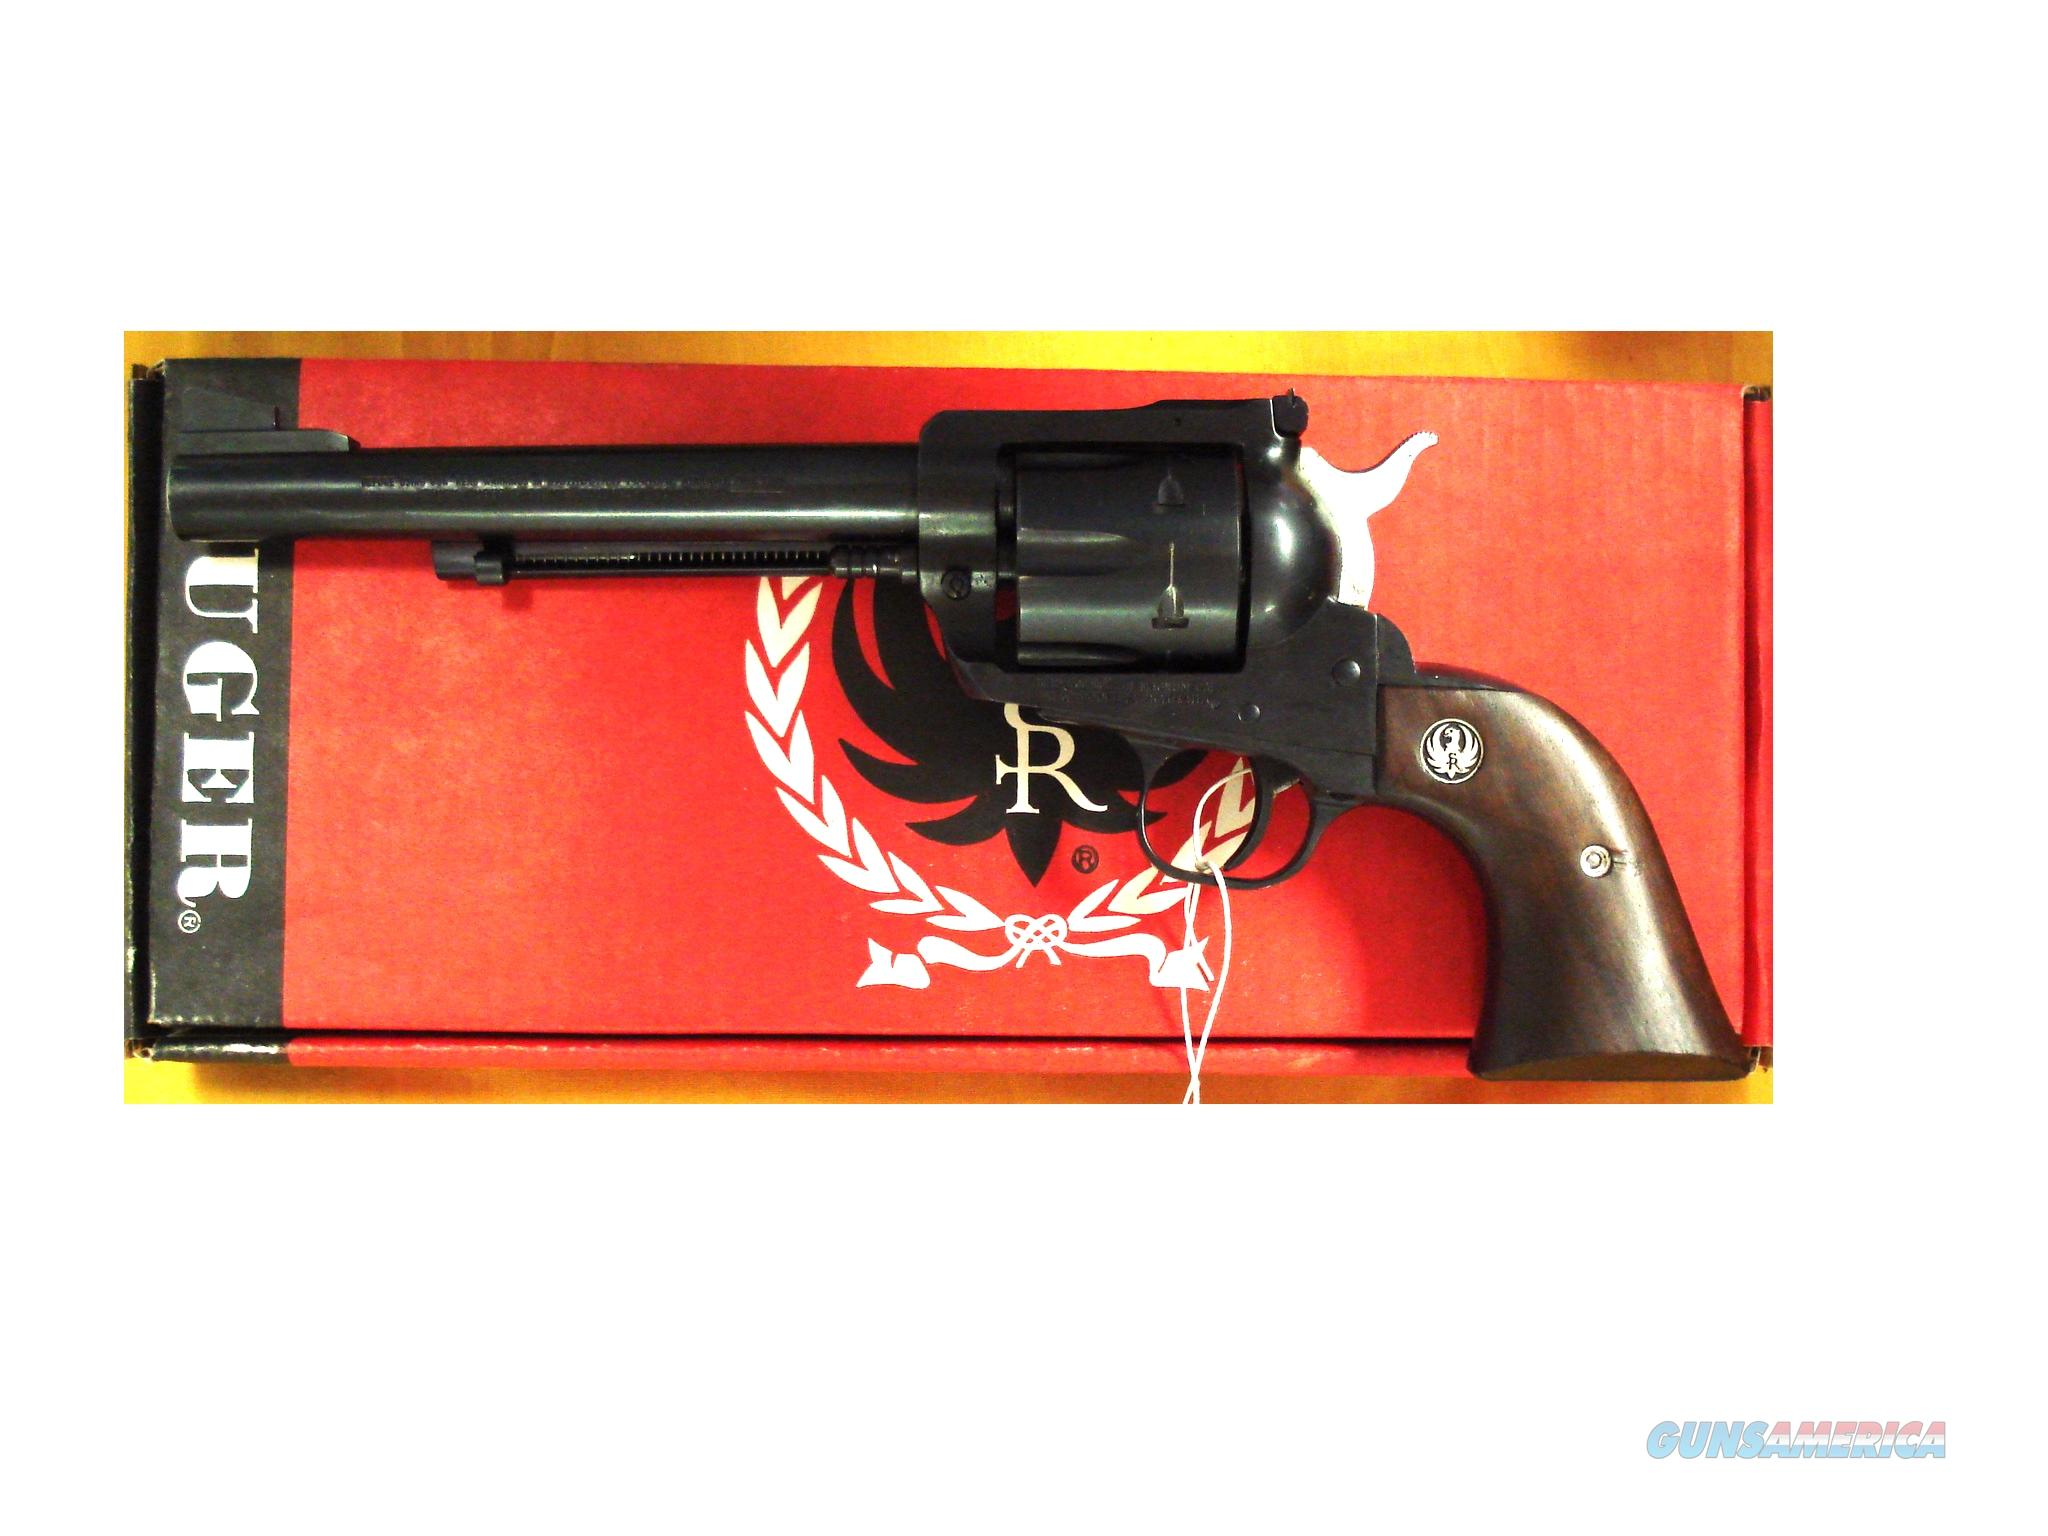 "RUGER NM BLACKHAWK .41 MAG 6 1/2"" BBL (97)  Guns > Pistols > Ruger Single Action Revolvers > Blackhawk Type"